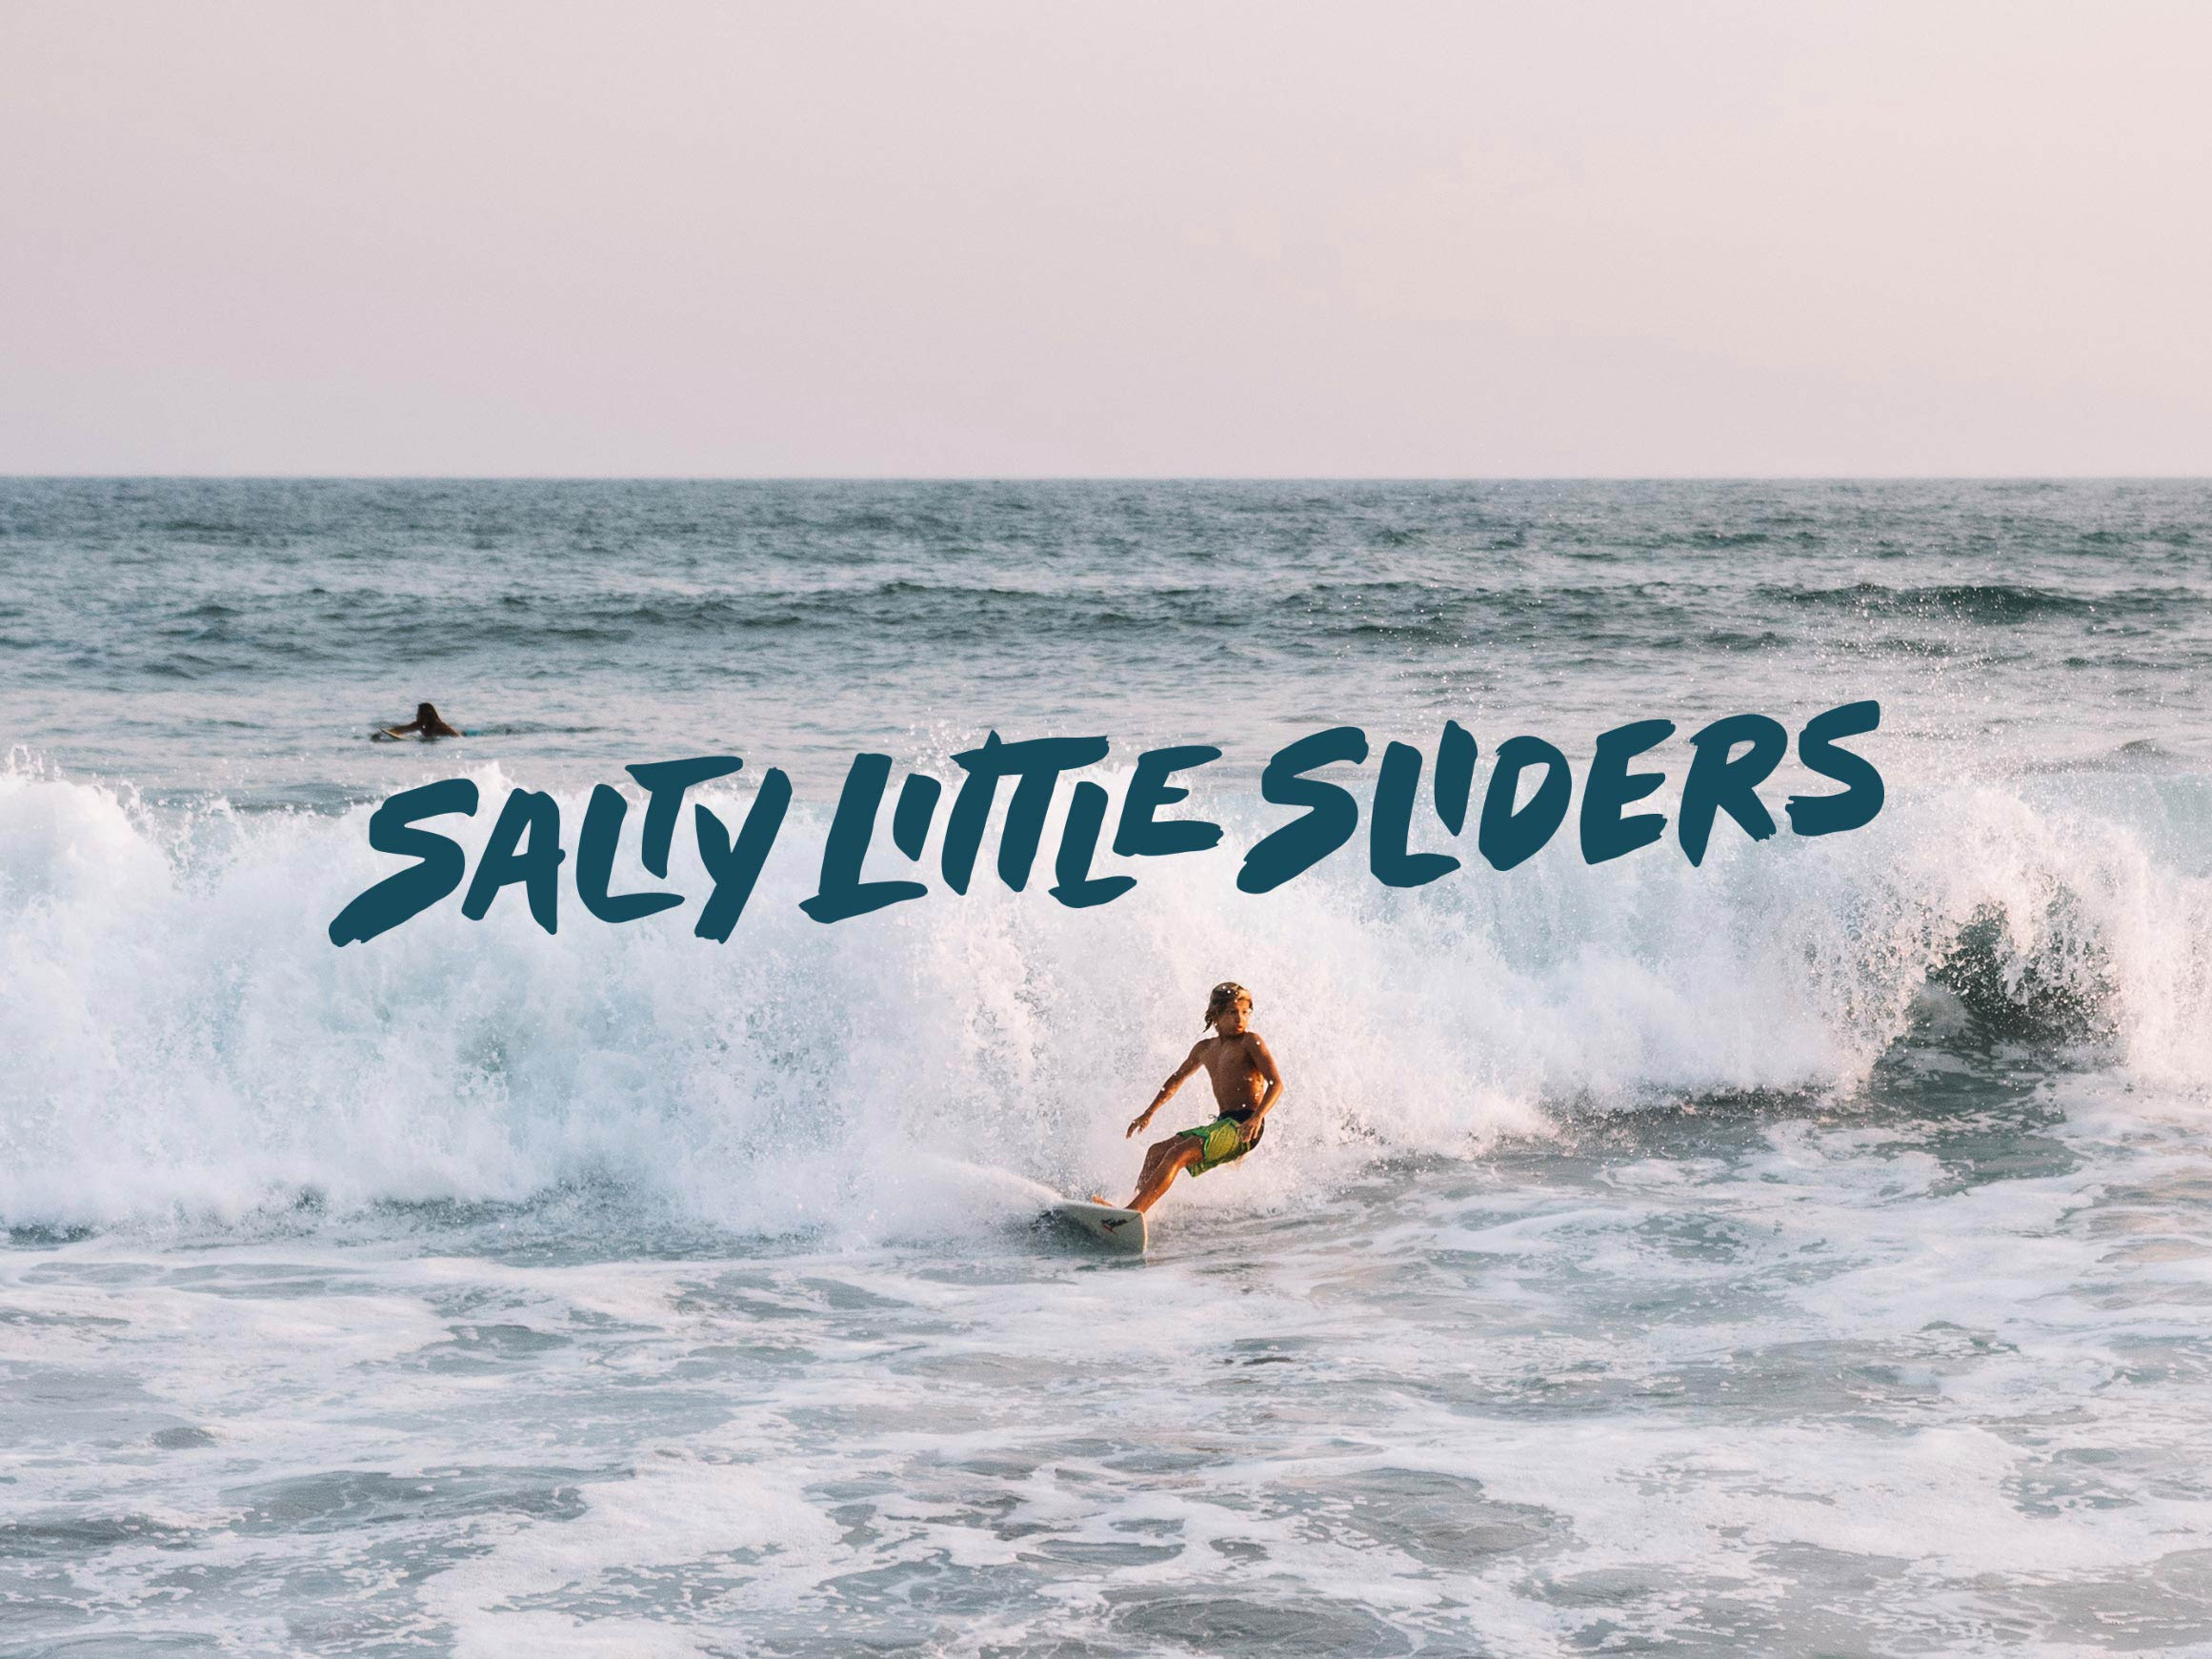 Salty Little Sliders  — Logo, Brand Identity, Strategy